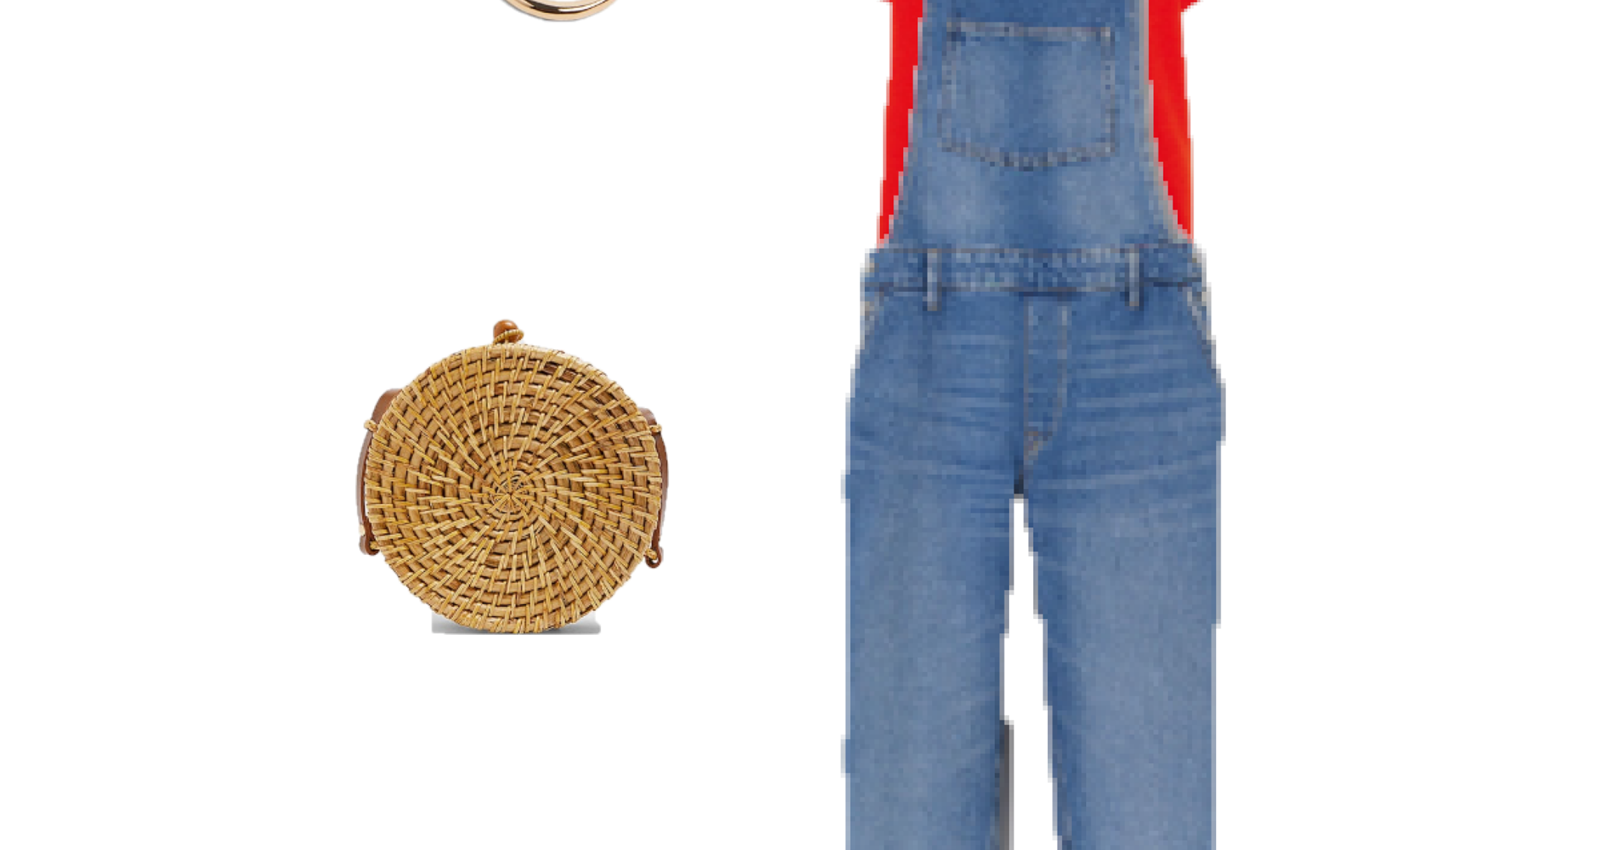 Outfit of the Day: A Denim Overall